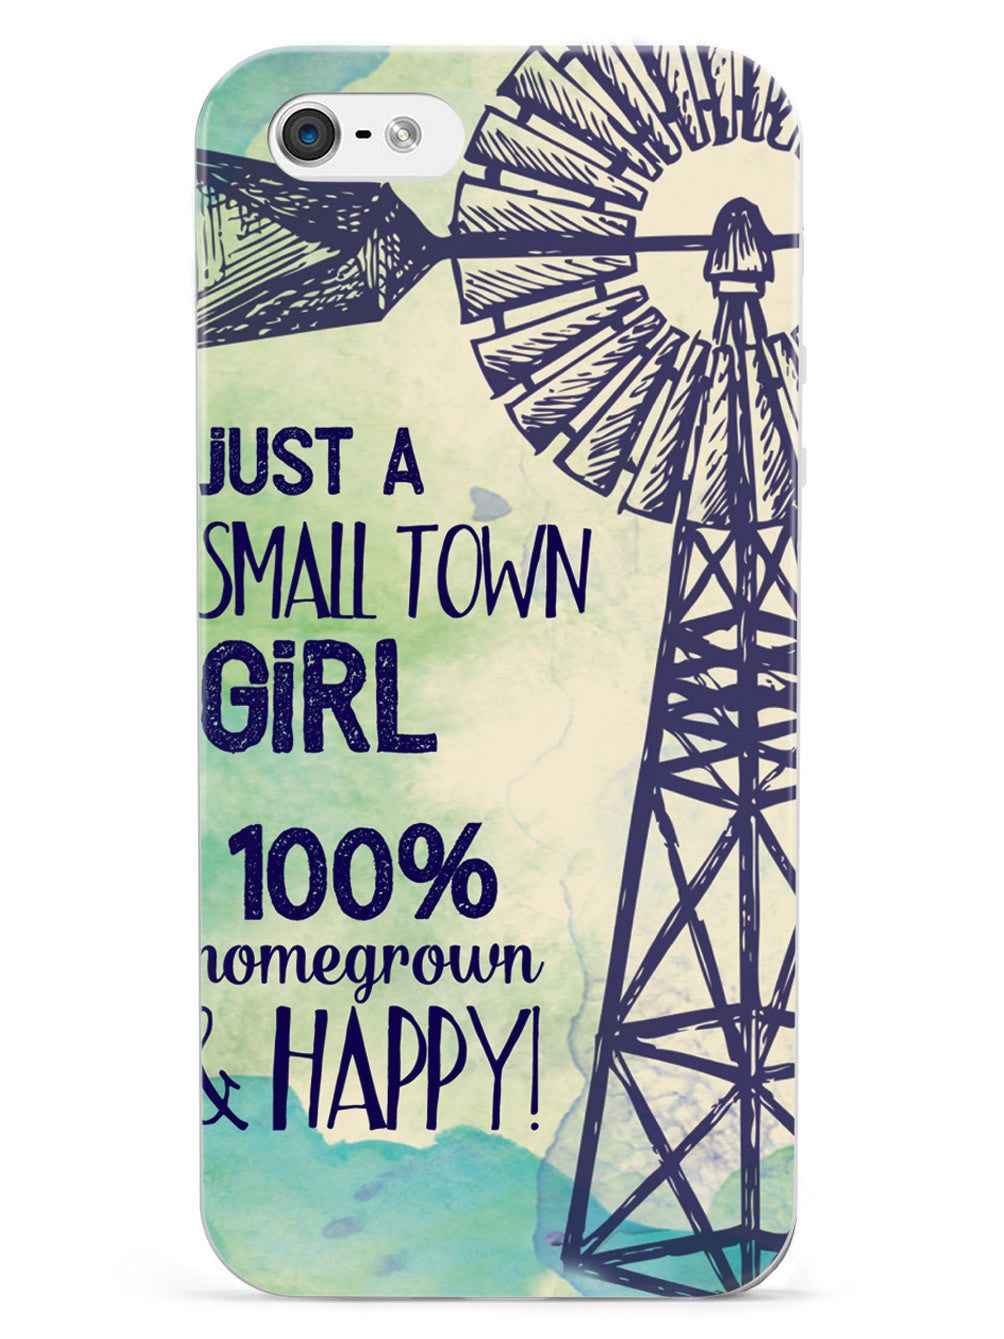 Small Town Girl - 100% Homegrown & Happy! Case